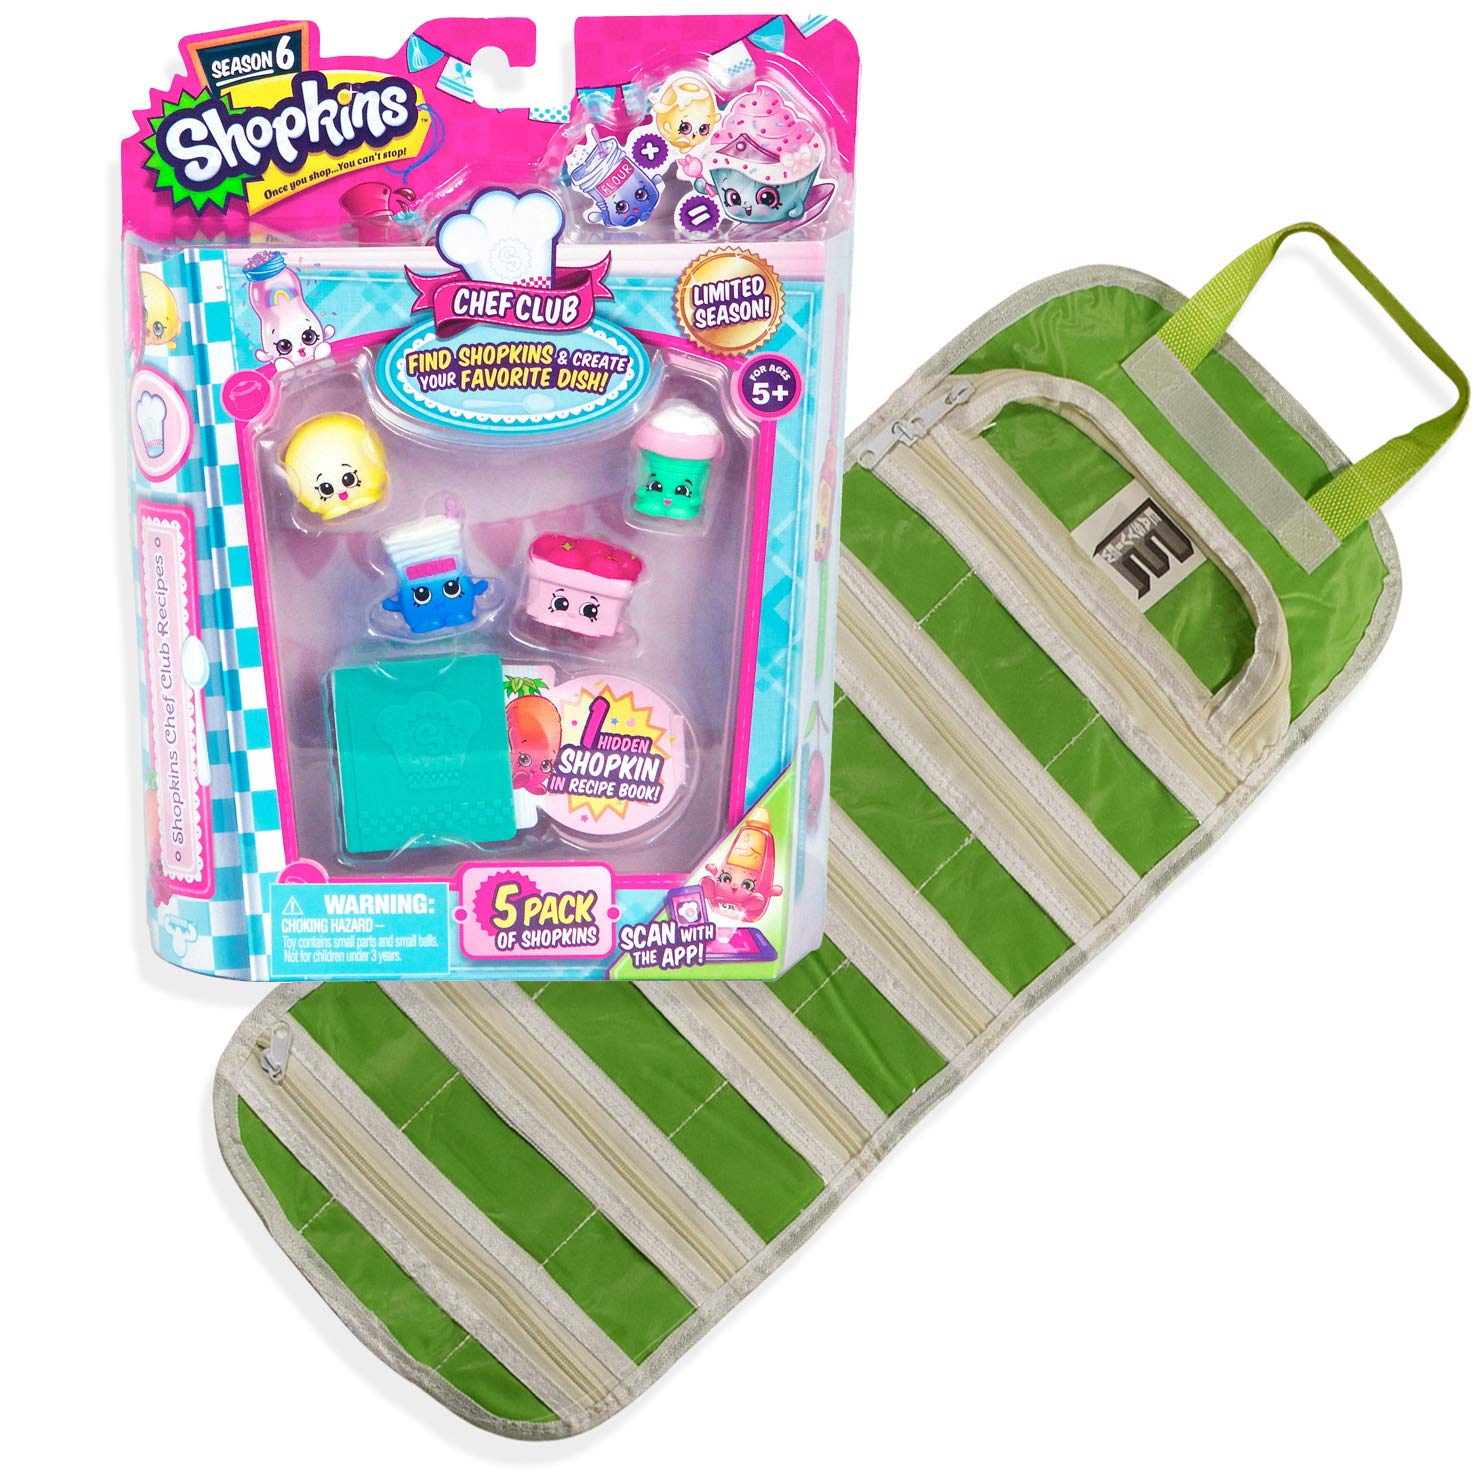 EASYVIEW Season 5 Charms 5-Pack Shopkin with a Compatible Toy Organizer Case Bundle Green